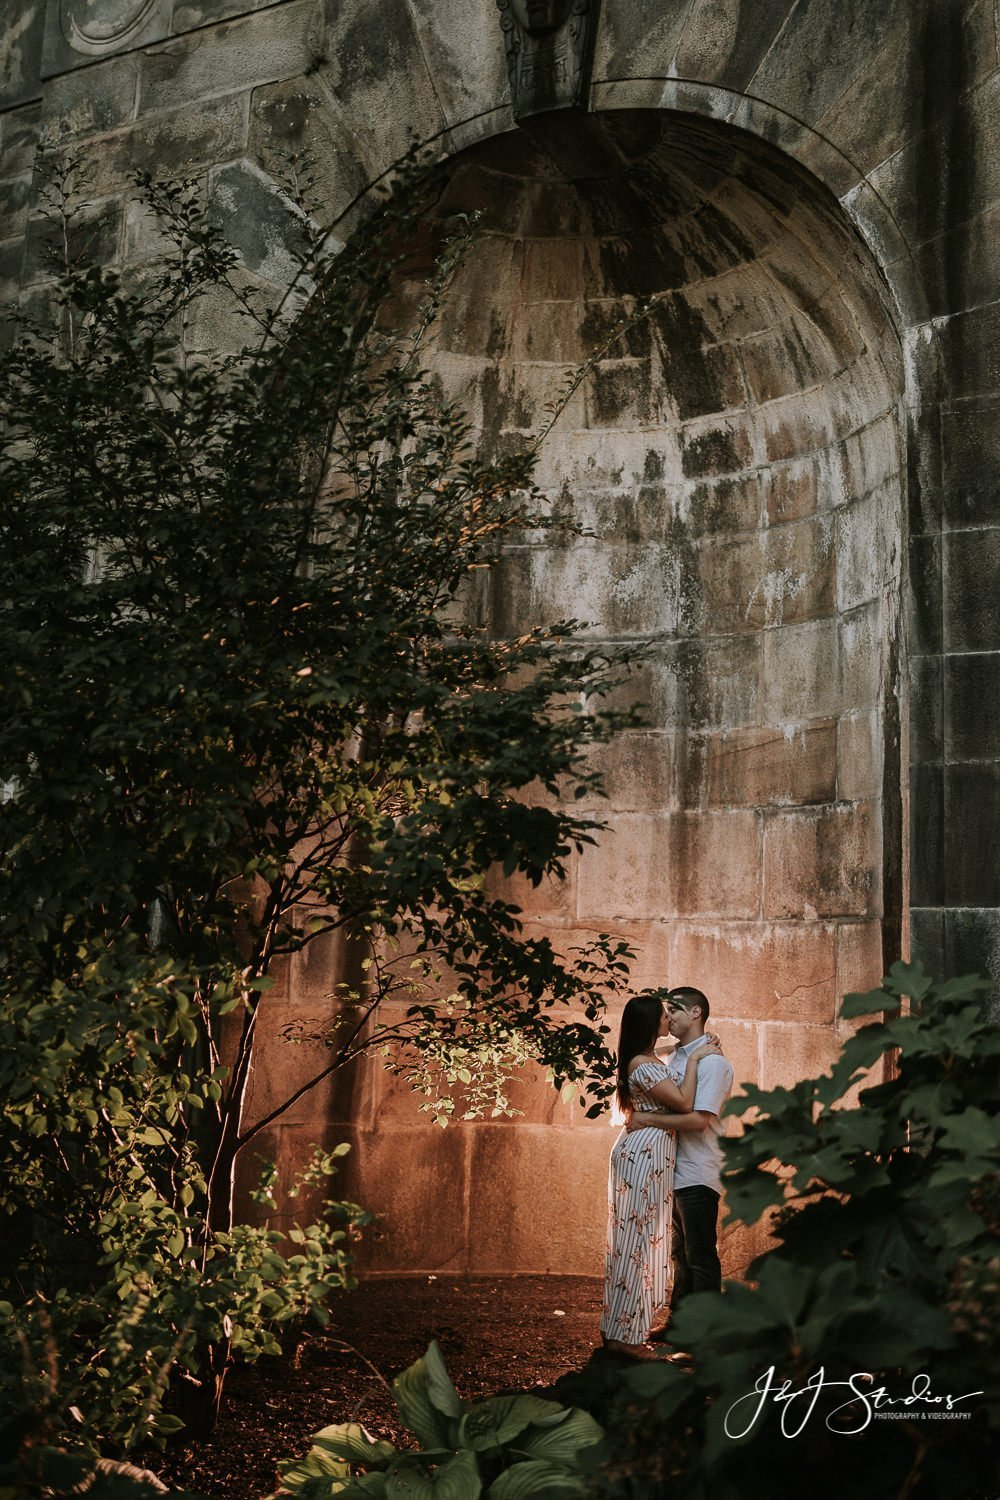 museum of art silhouette engagement photo by j&j studios